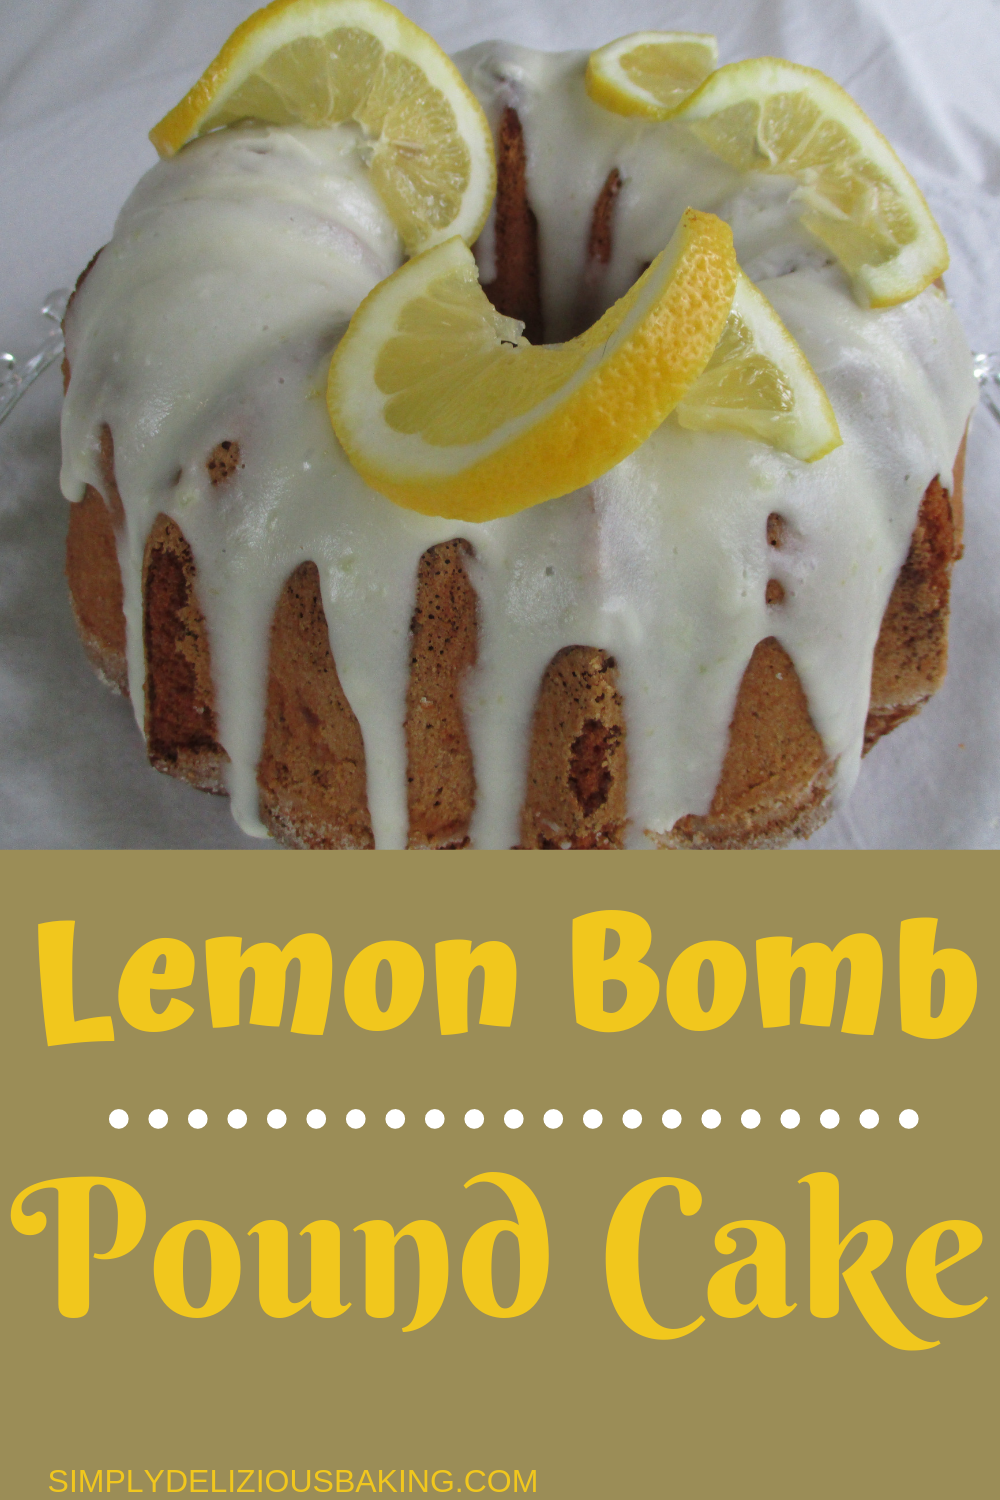 Easy Southern Lemon Pound Cake Easy Baking Recipes Sour Cream Pound Cake Lemon Bundt Cake Recipe